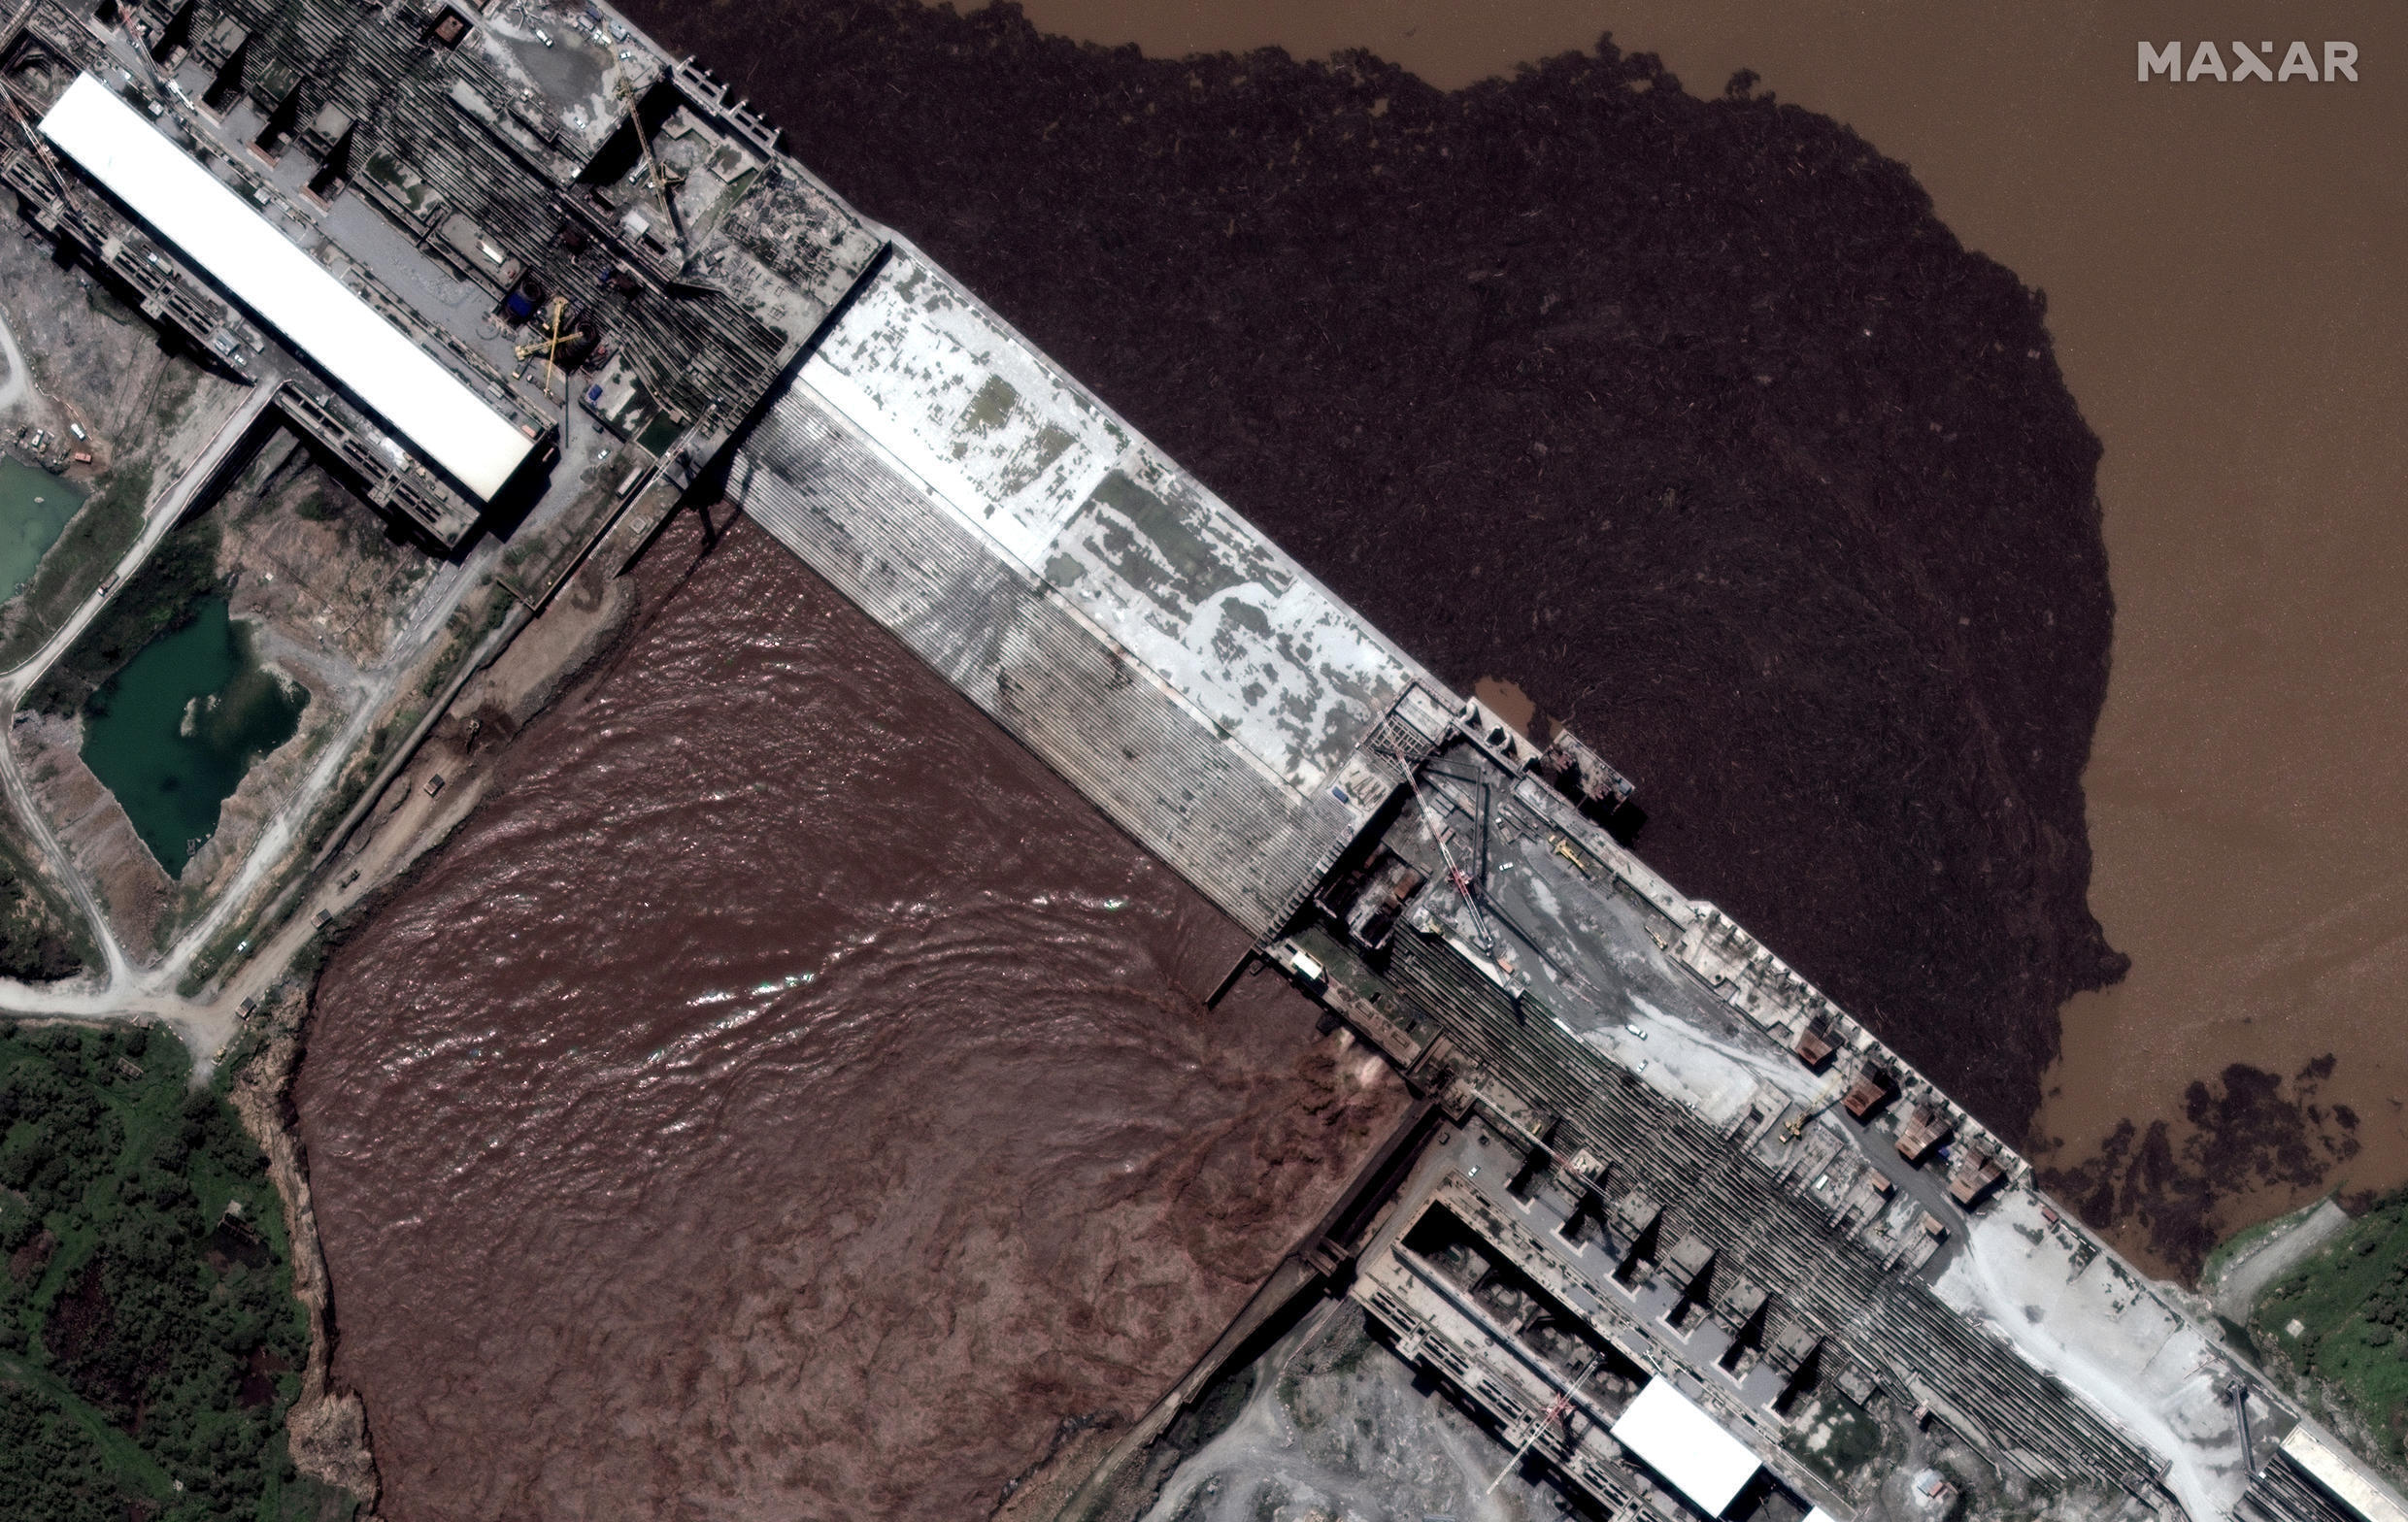 A handout satellite image shows a closeup view of the Grand Ethiopian Renaissance Dam (GERD) and the Blue Nile River in Ethiopia July 12, 2020.